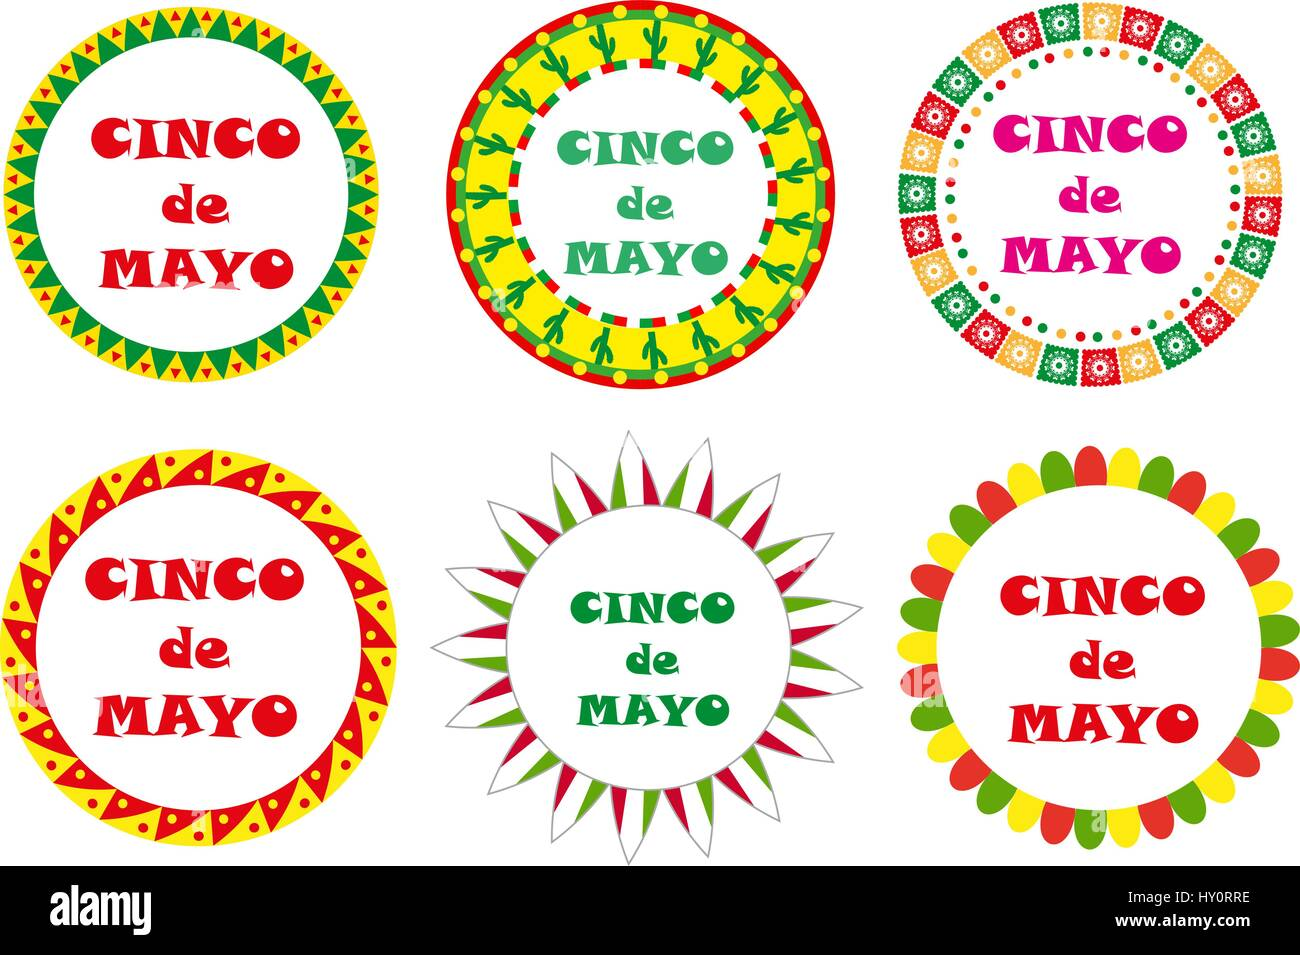 Mexican Border Stock Vector Images - Alamy